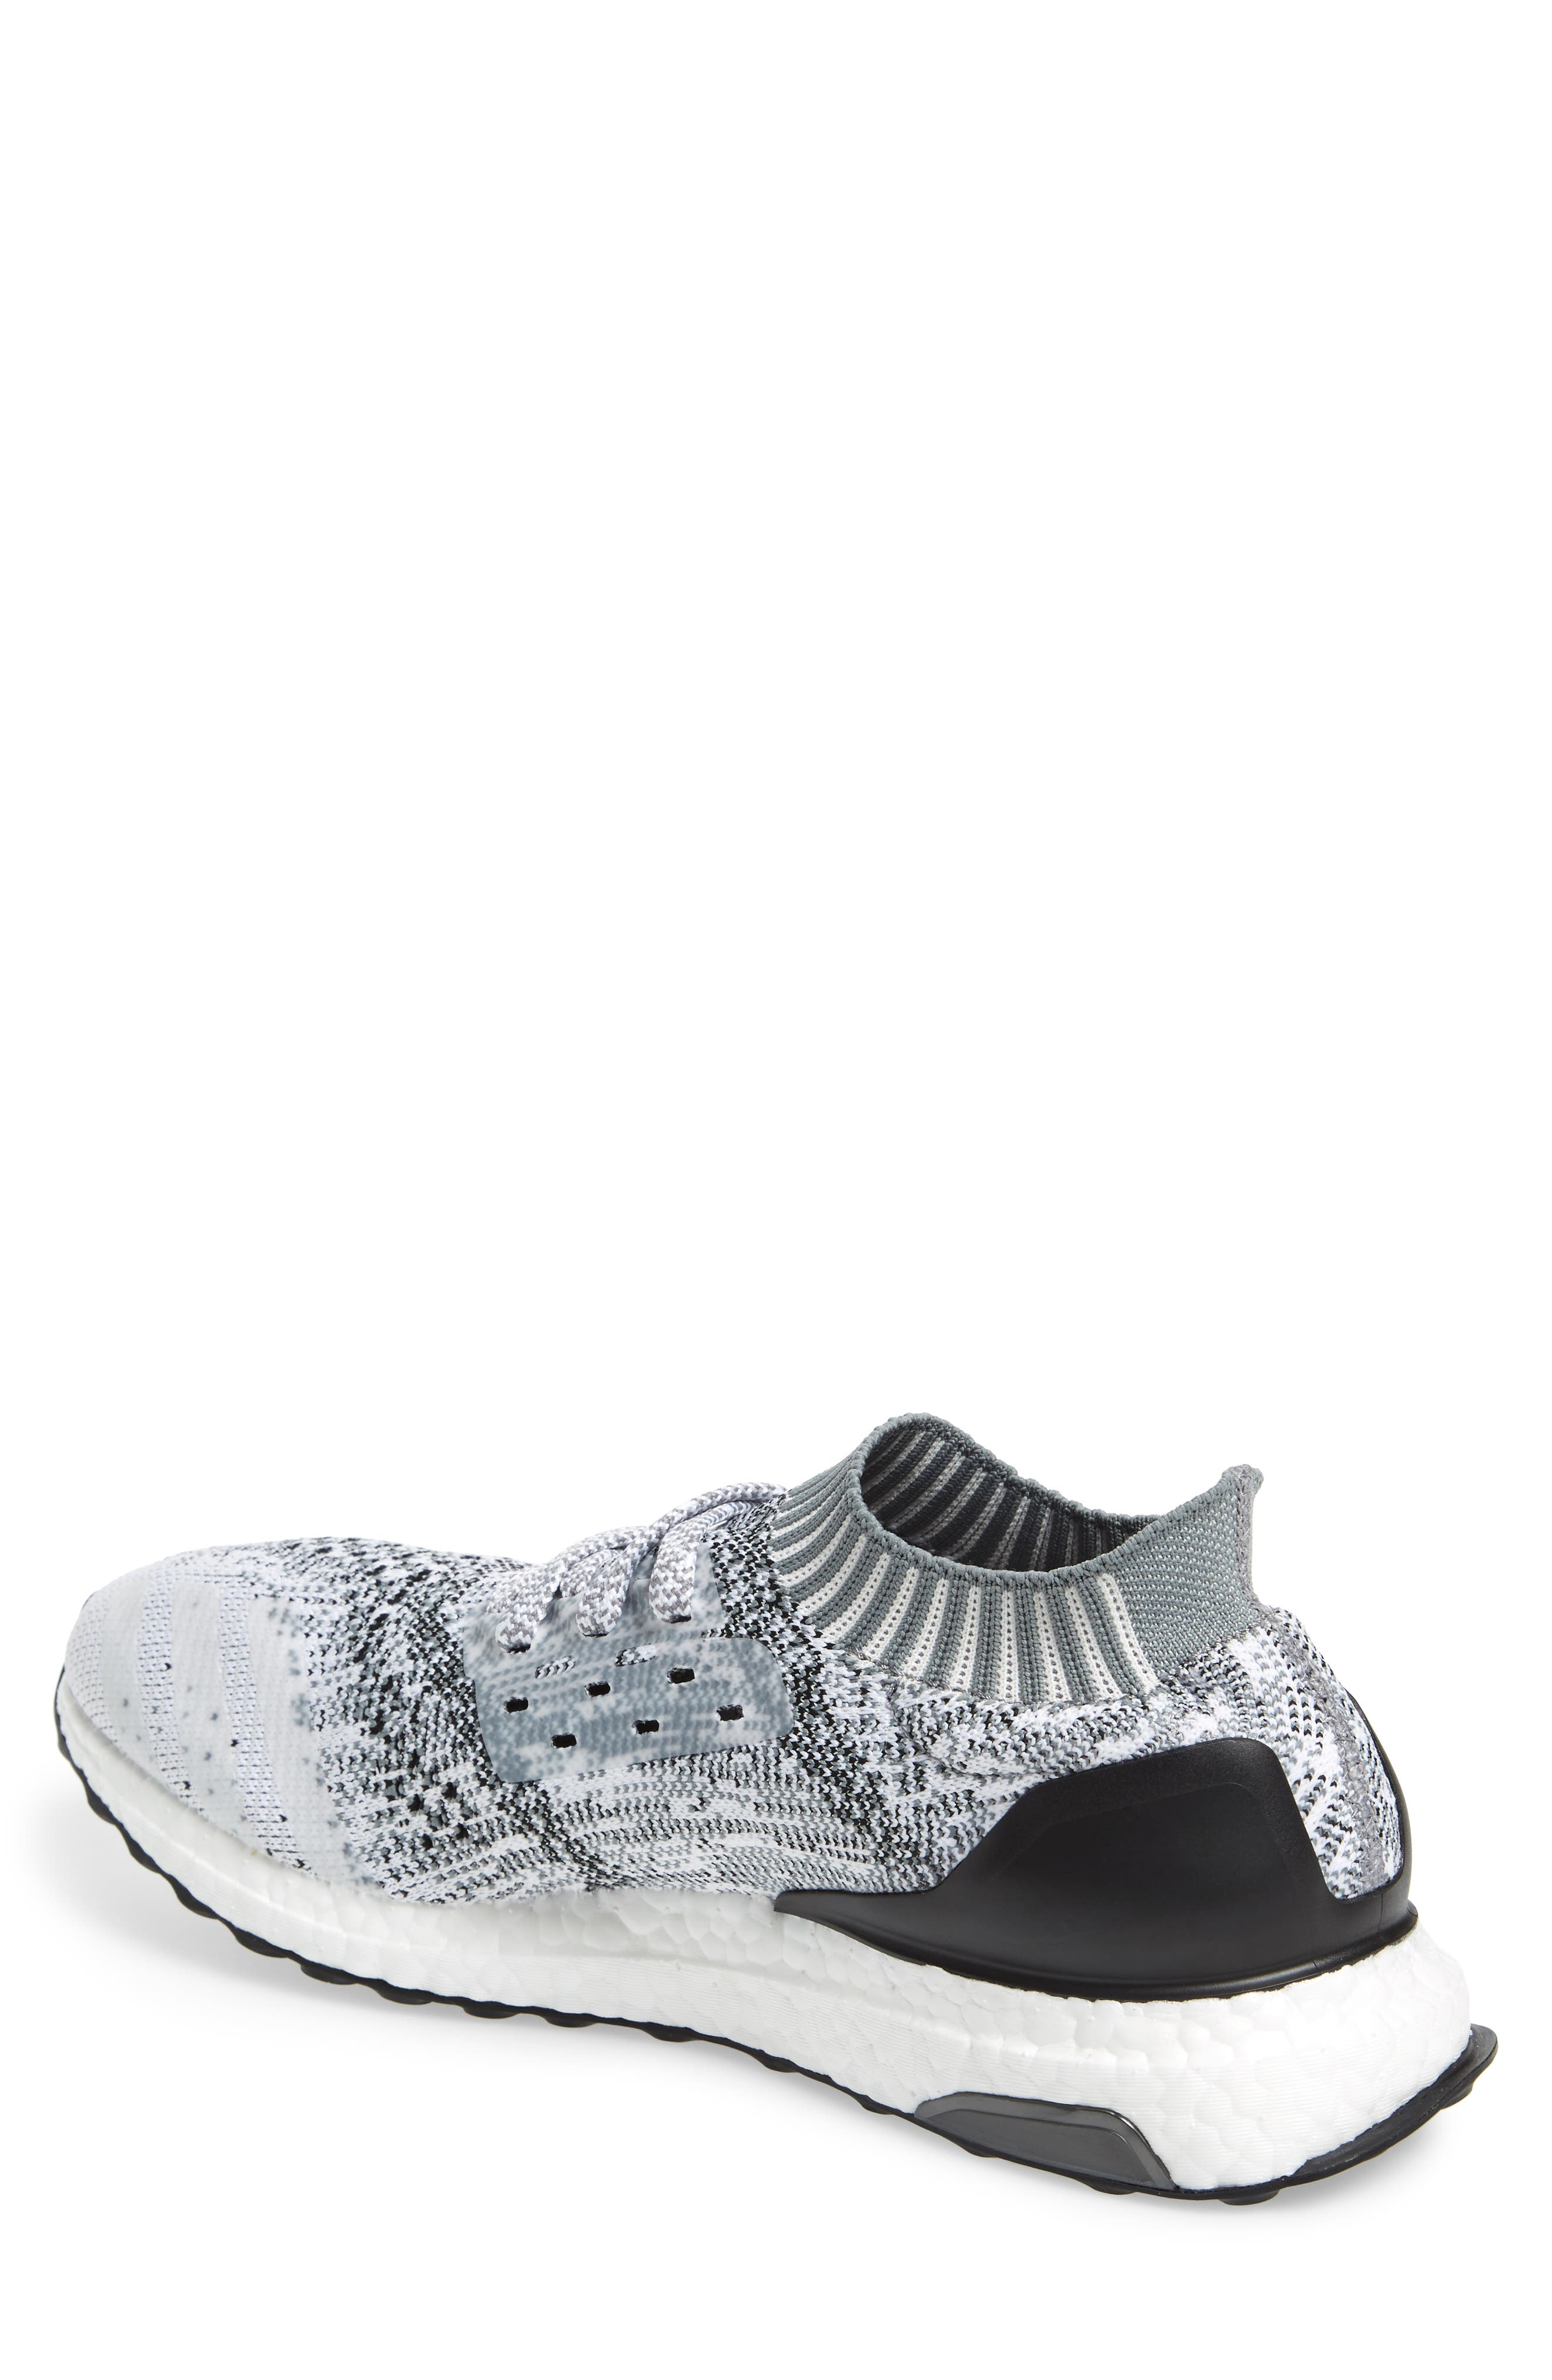 'UltraBoost Uncaged' Running Shoe,                             Alternate thumbnail 2, color,                             White/ White/ Grey